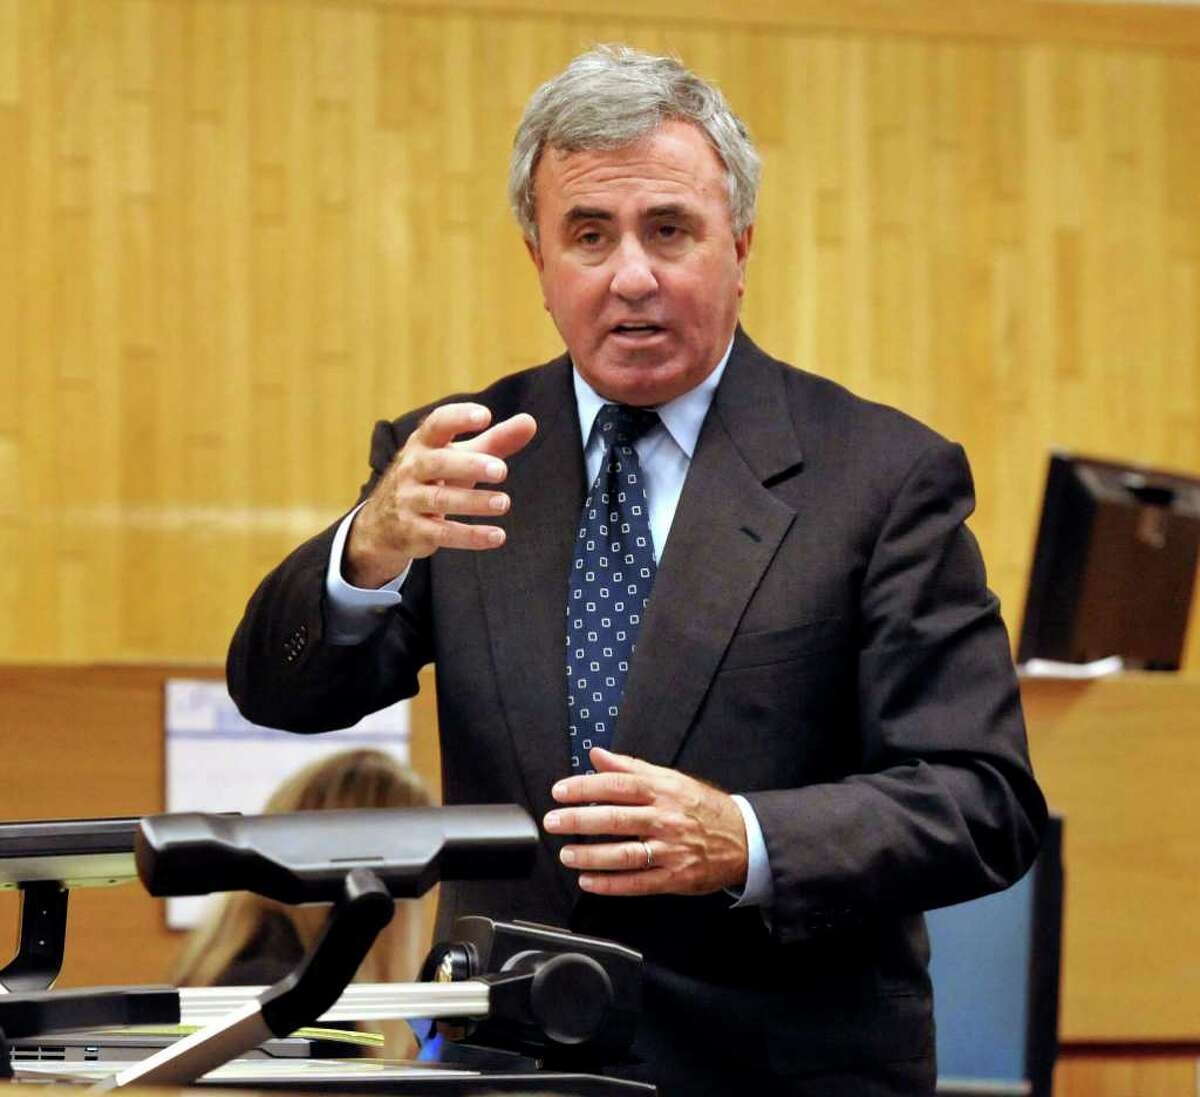 Defense Attorney Mickey Sherman makes his opening statement in the courtroom at Danbury Superior Court in the murder trial of Marash Gojcaj, Wednesday, Sept. 29, 2010. Sherman faces up to two years in prison as a result of his guilty pleas last summer to two misdemeanor charges of failing to pay $420,710 in owed income taxes for the years 2001 and 2002. He already repaid the taxes owed.